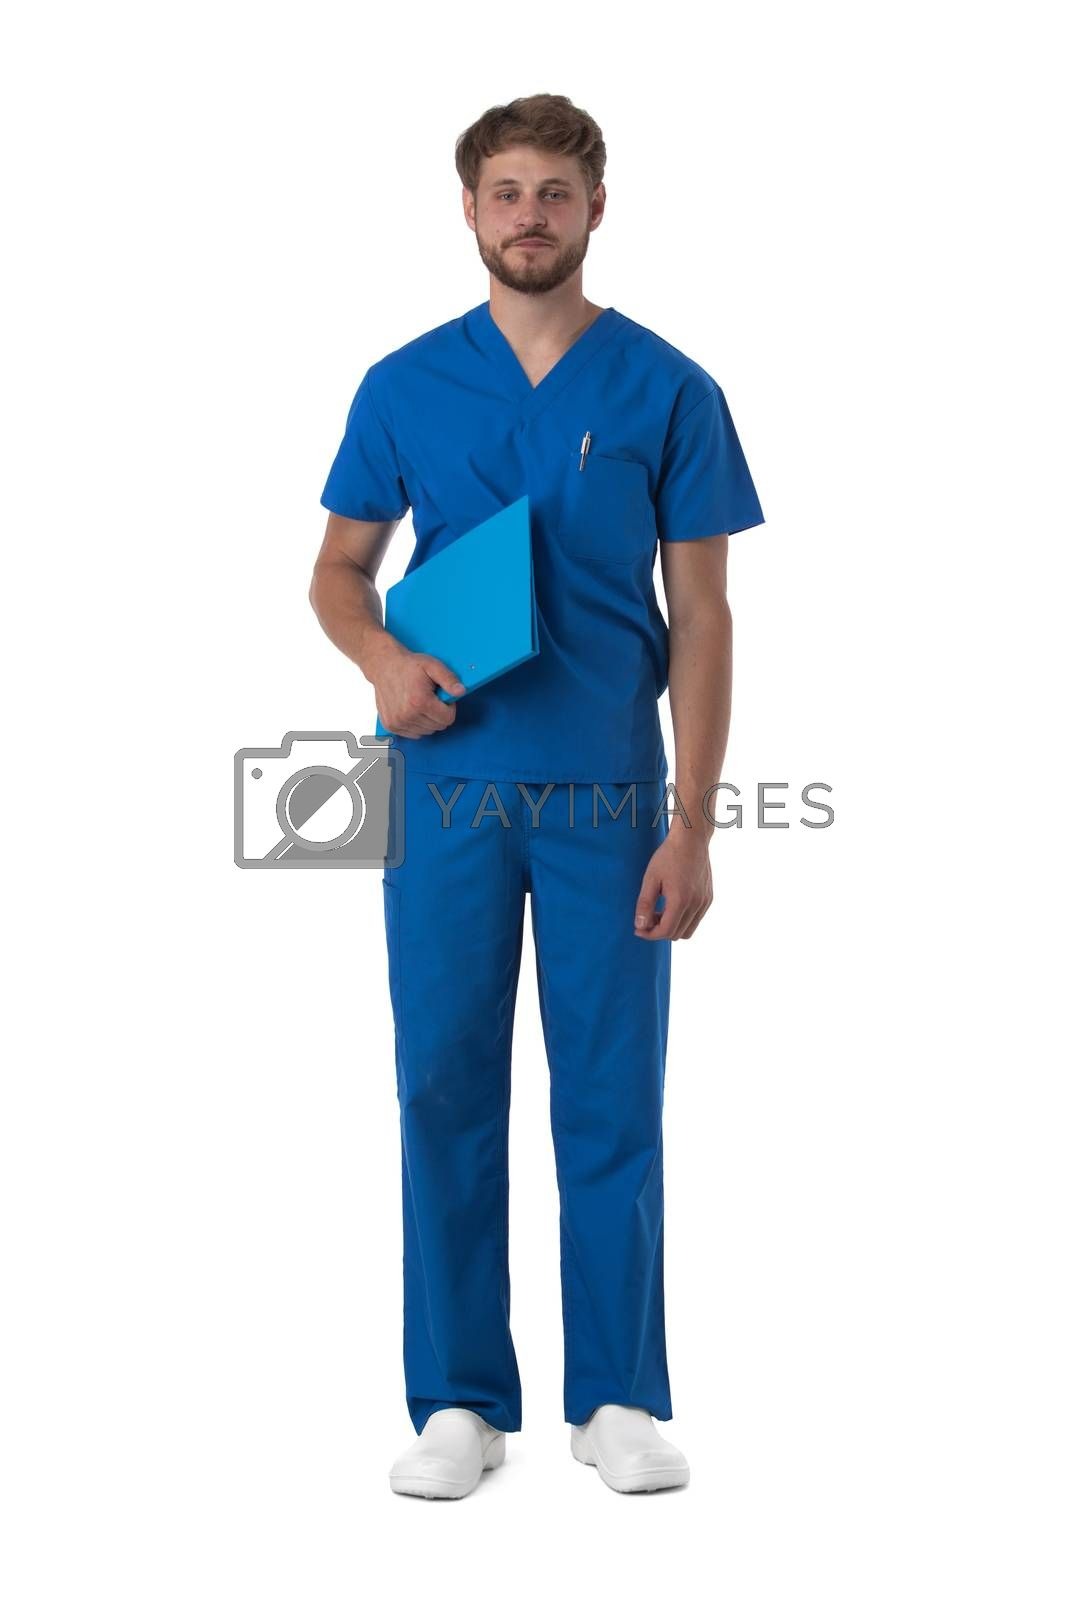 Male nurse in blue uniform with stethoscope and document folder isolated on white background, full length portrait